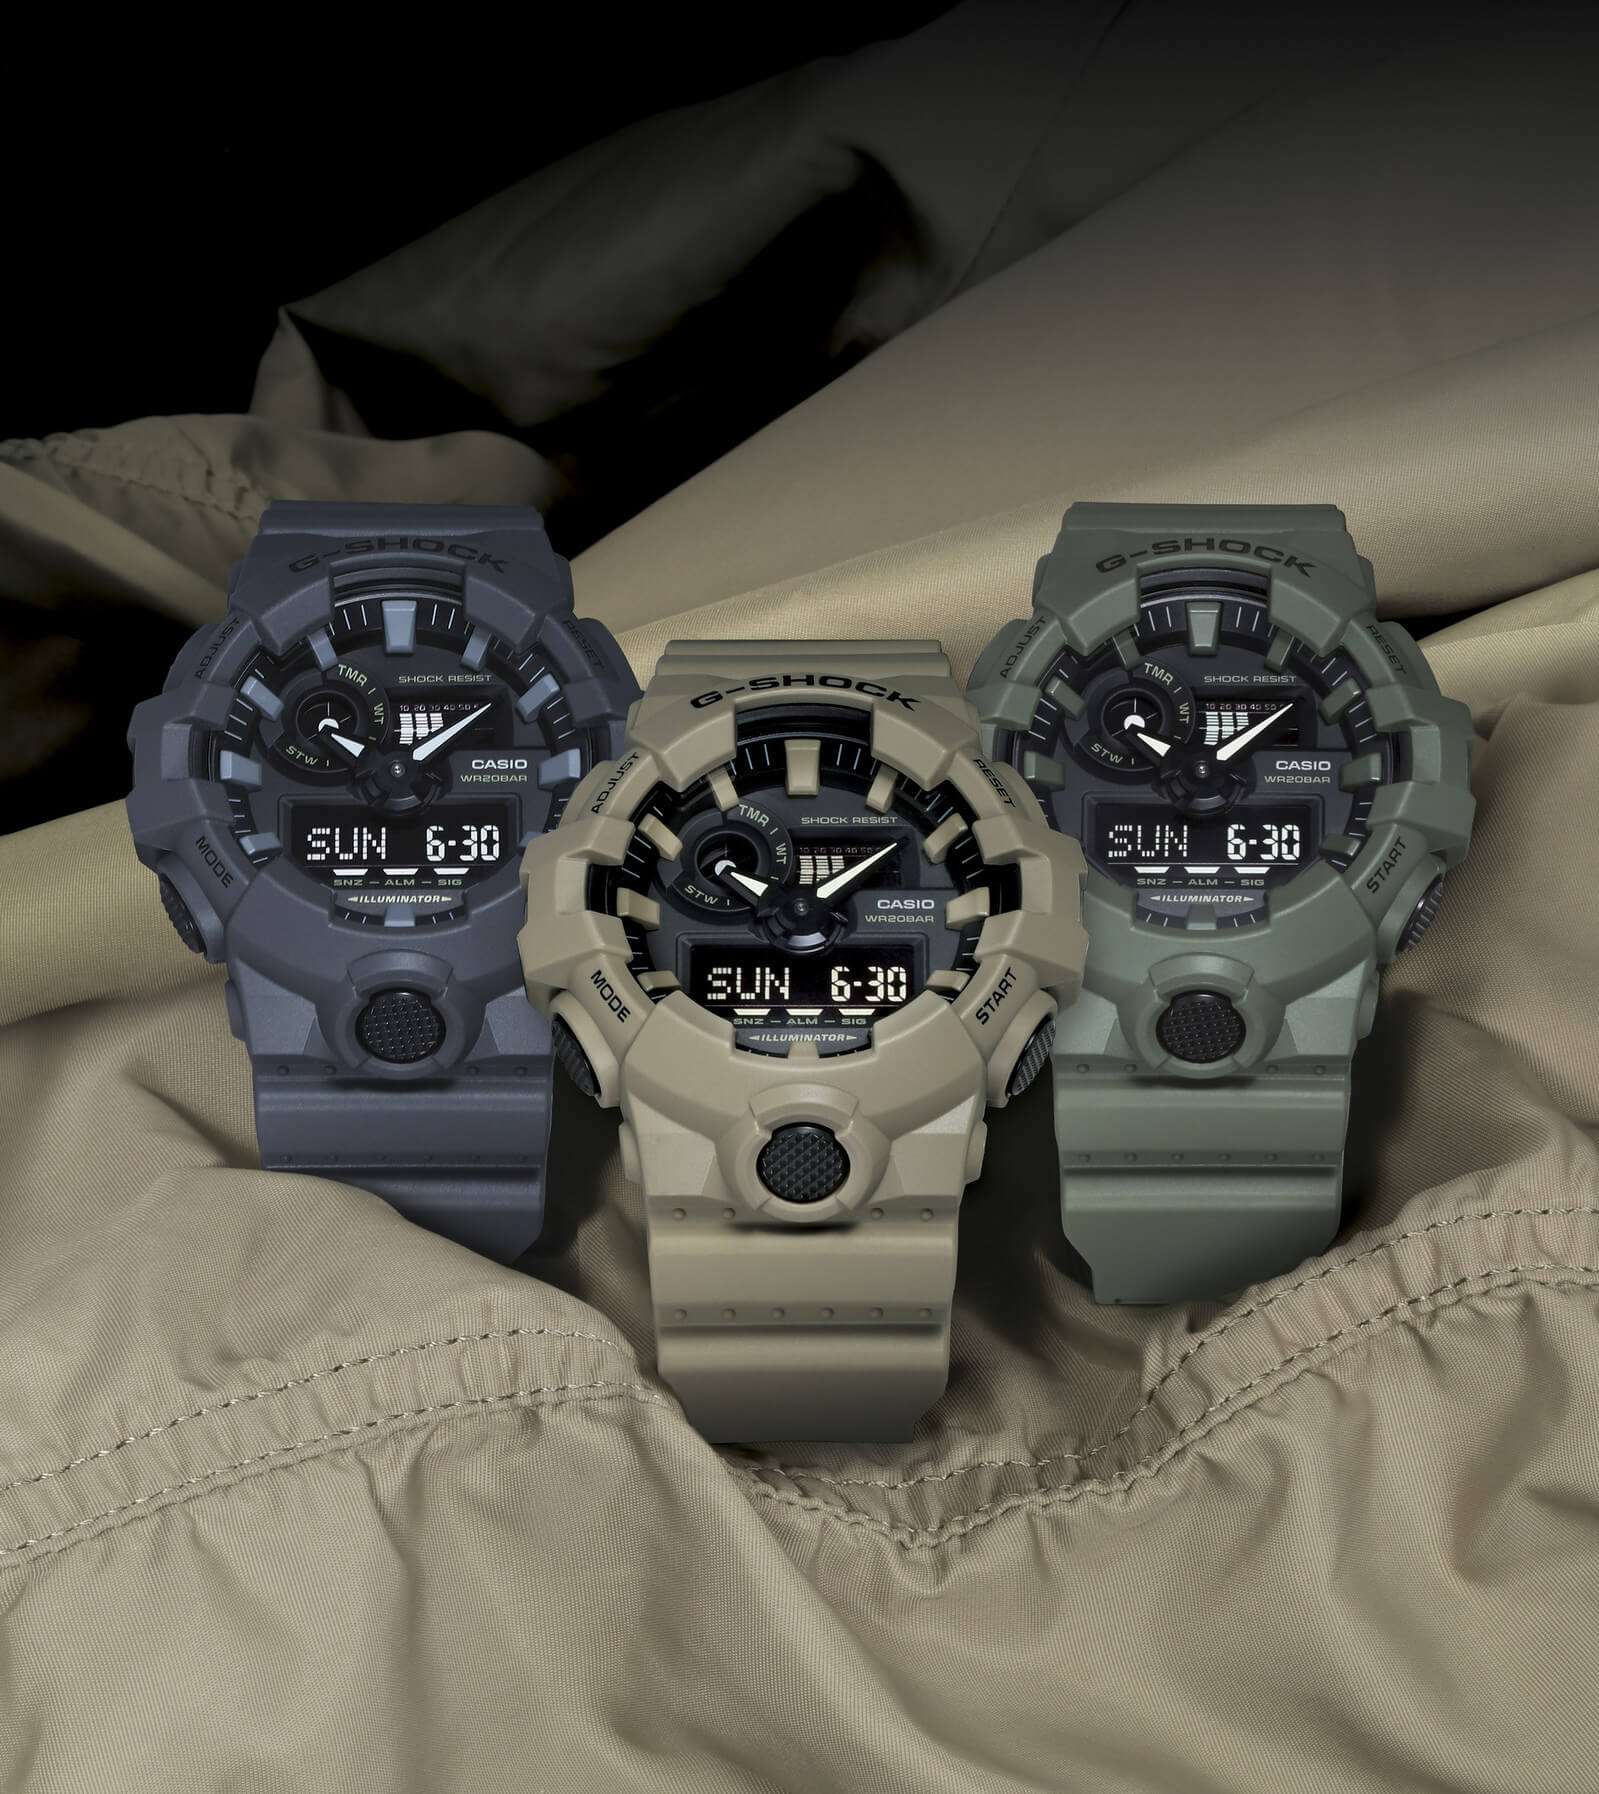 99ff5274fde G-Shock GA-700UC Utility Color Collection – G-Central G-Shock Watch ...